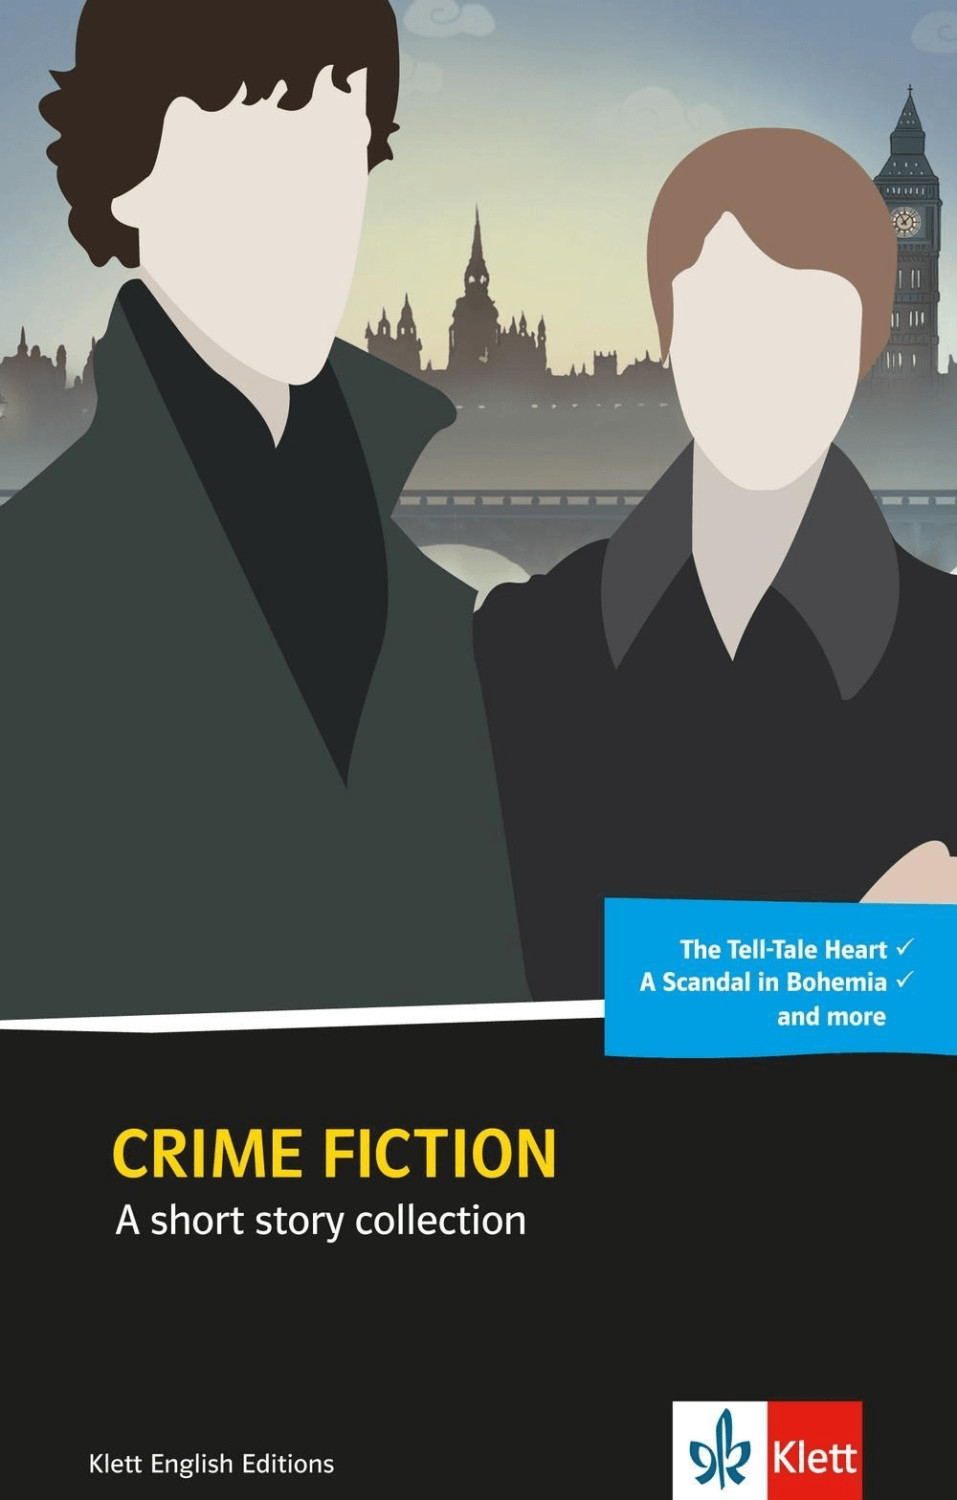 crime fiction notes It also includes chapters on the treatment of crime in eighteenth-century literature, french and victorian fiction, women and black detectives, crime on film and tv, police fiction and postmodernist uses of the detective form.